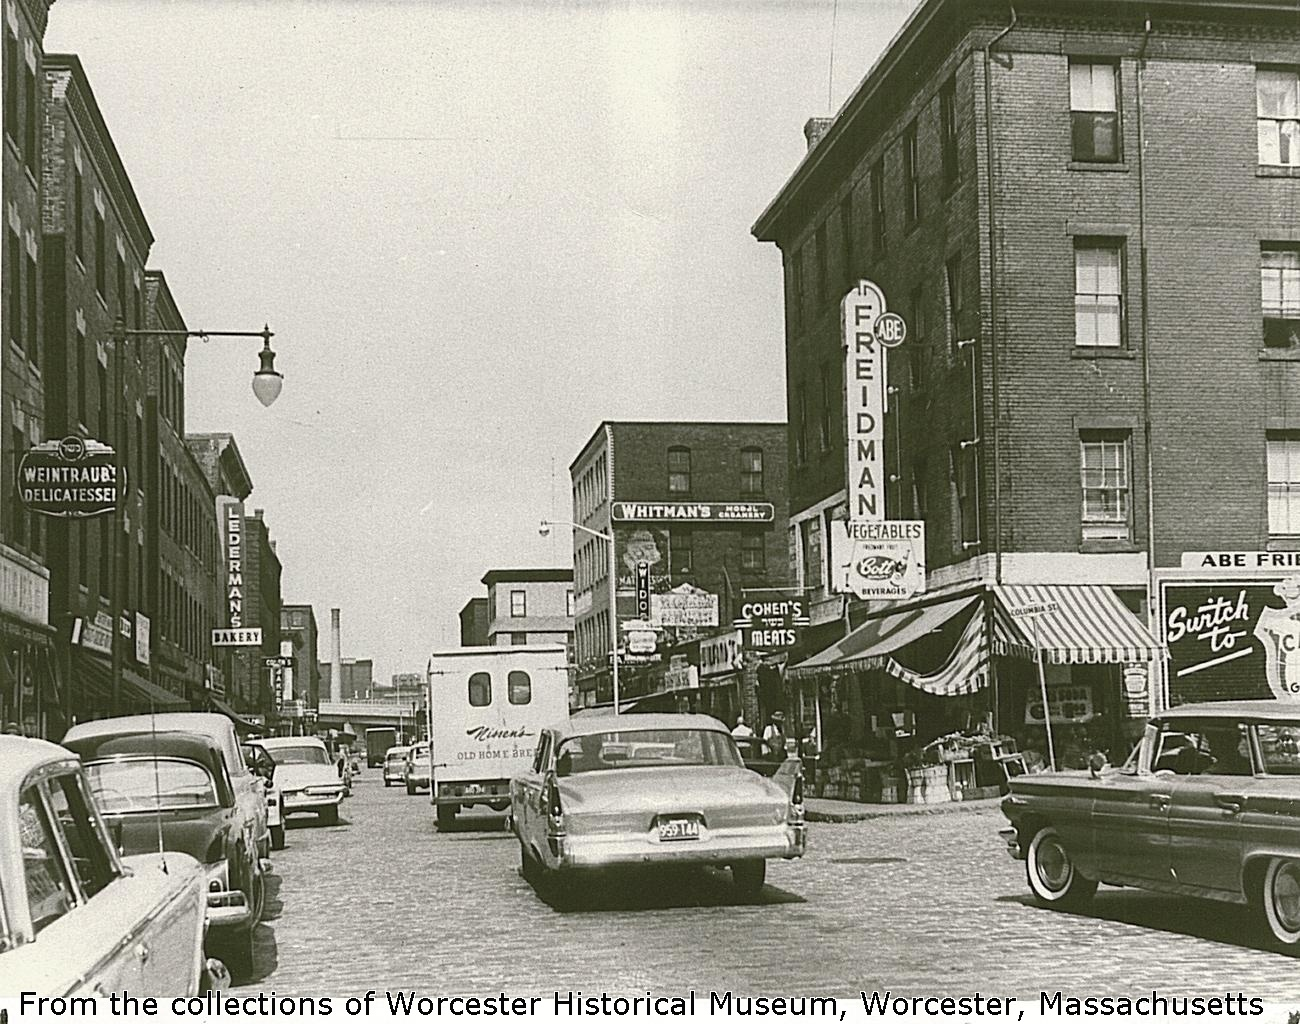 At the end of Shabbat after sunset on Saturdays, I was told that Water Street was so packed with people that one could barely move. Photo courtesy of Worcester Historical Museum